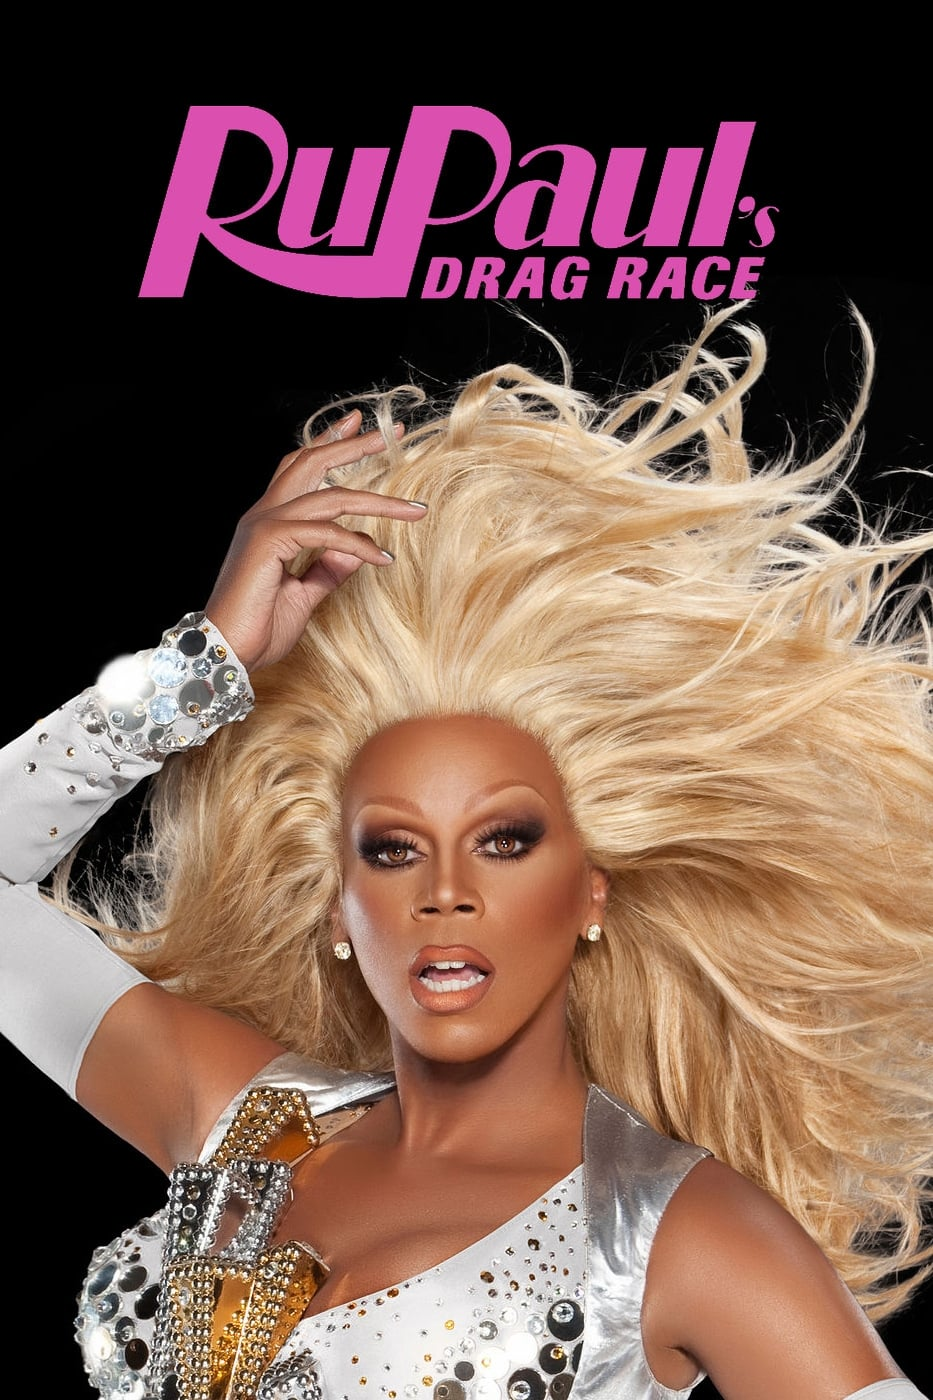 RuPaul's Drag Race Season 1